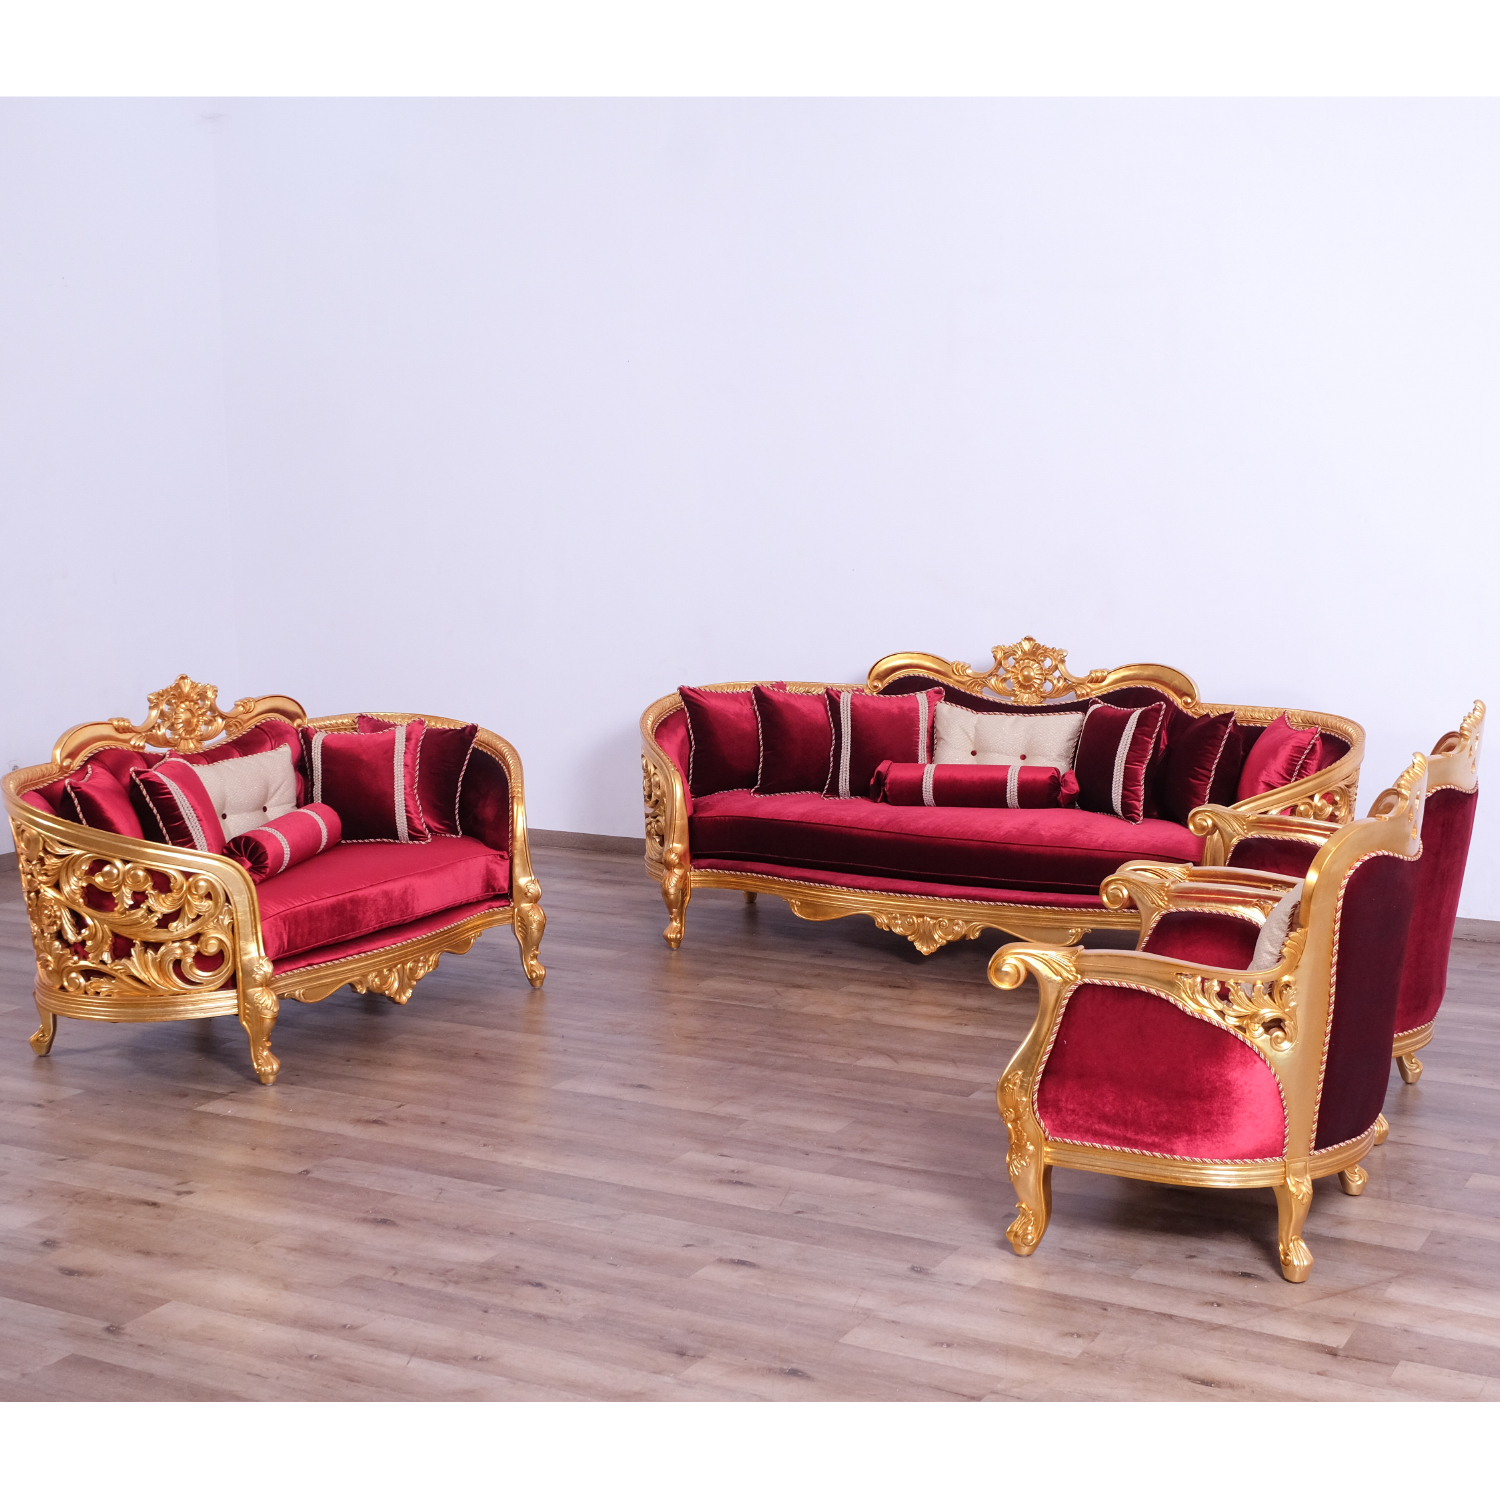 Awe Inspiring Bellagio Ii Sofa In Gold Leaf Mahogany Red Velvet By Grand European Luxury Furniture Machost Co Dining Chair Design Ideas Machostcouk